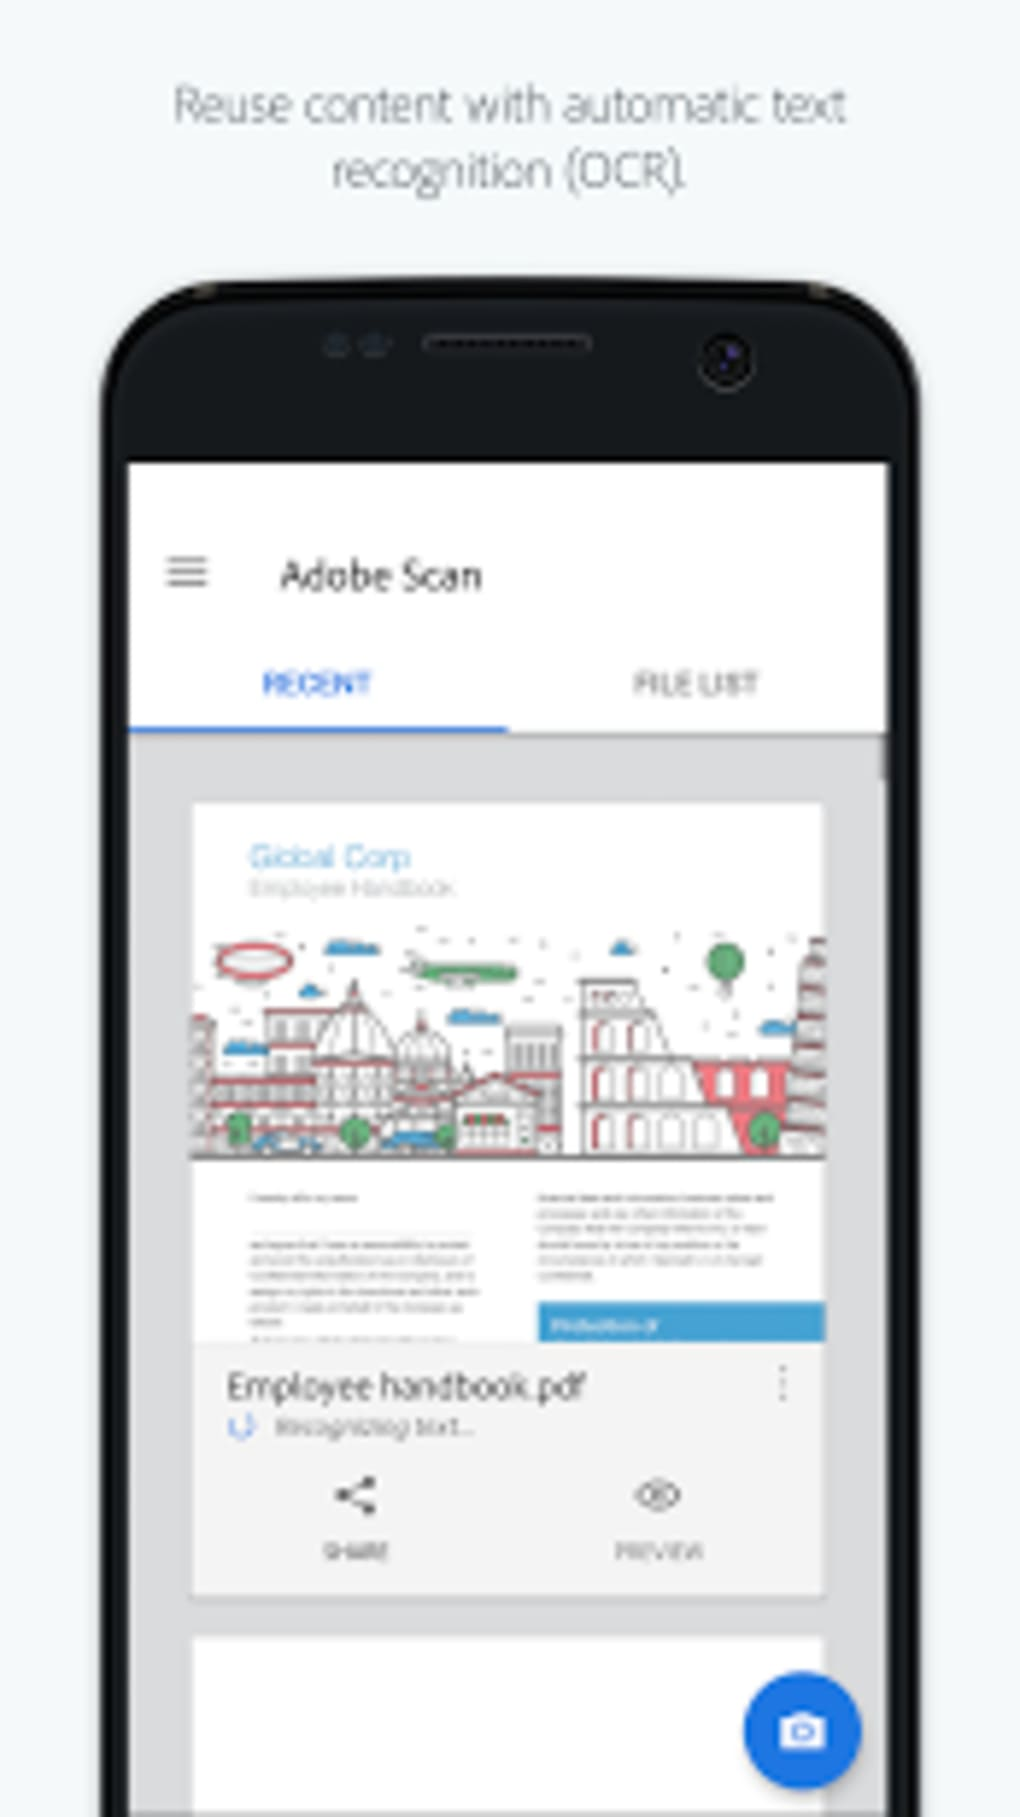 Adobe Scan for Android - Download